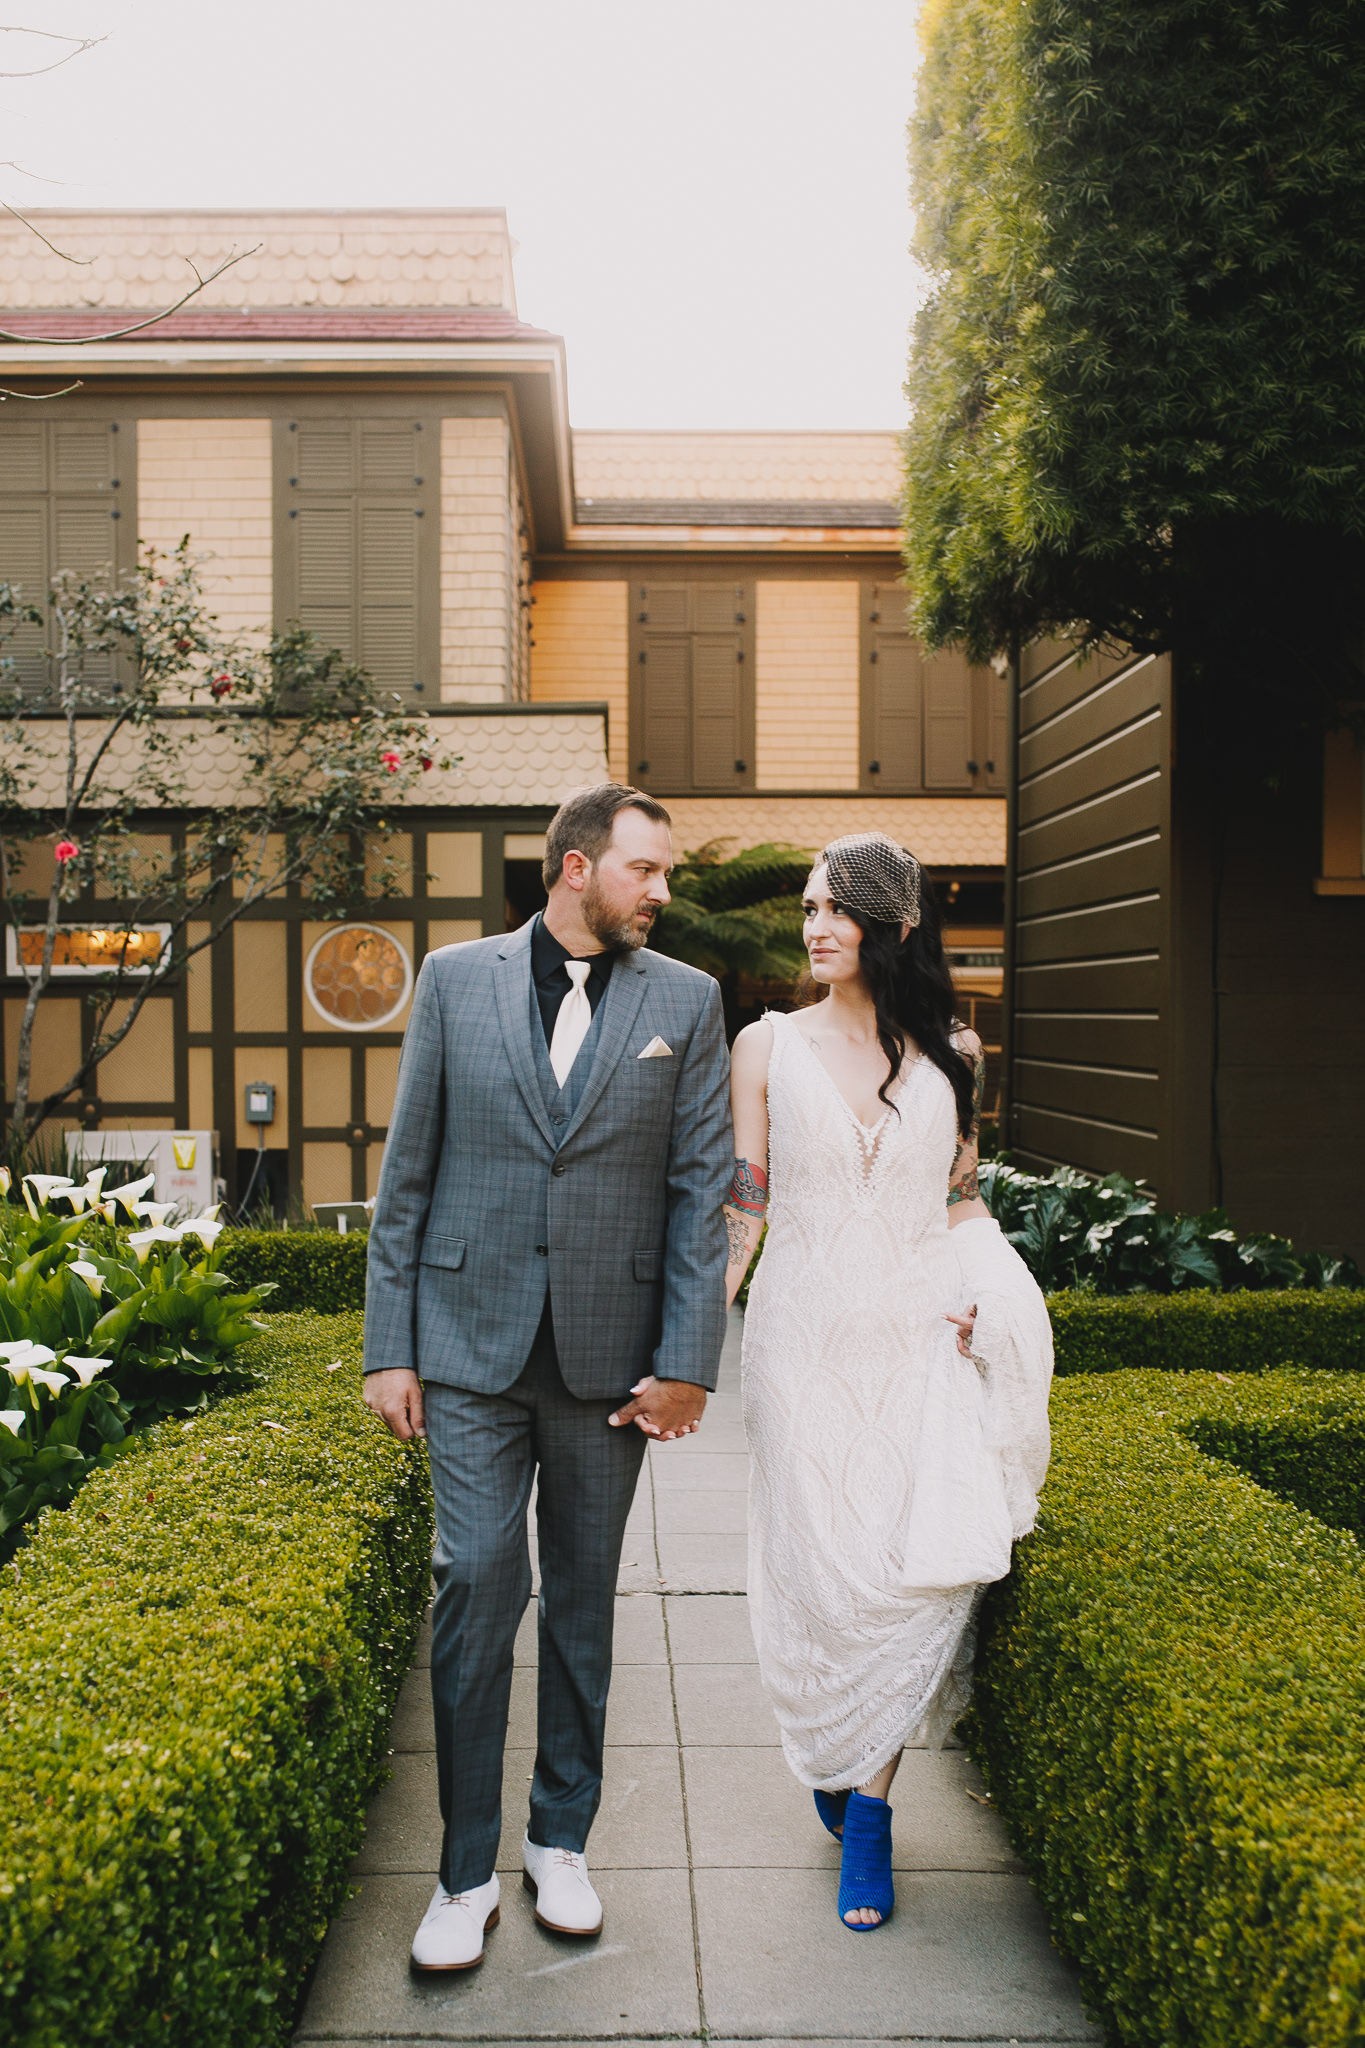 Archer Inspired Photography Sara and Aaron Winchester Mystery House NorCal San Jose California Wedding Photographer-390.jpg